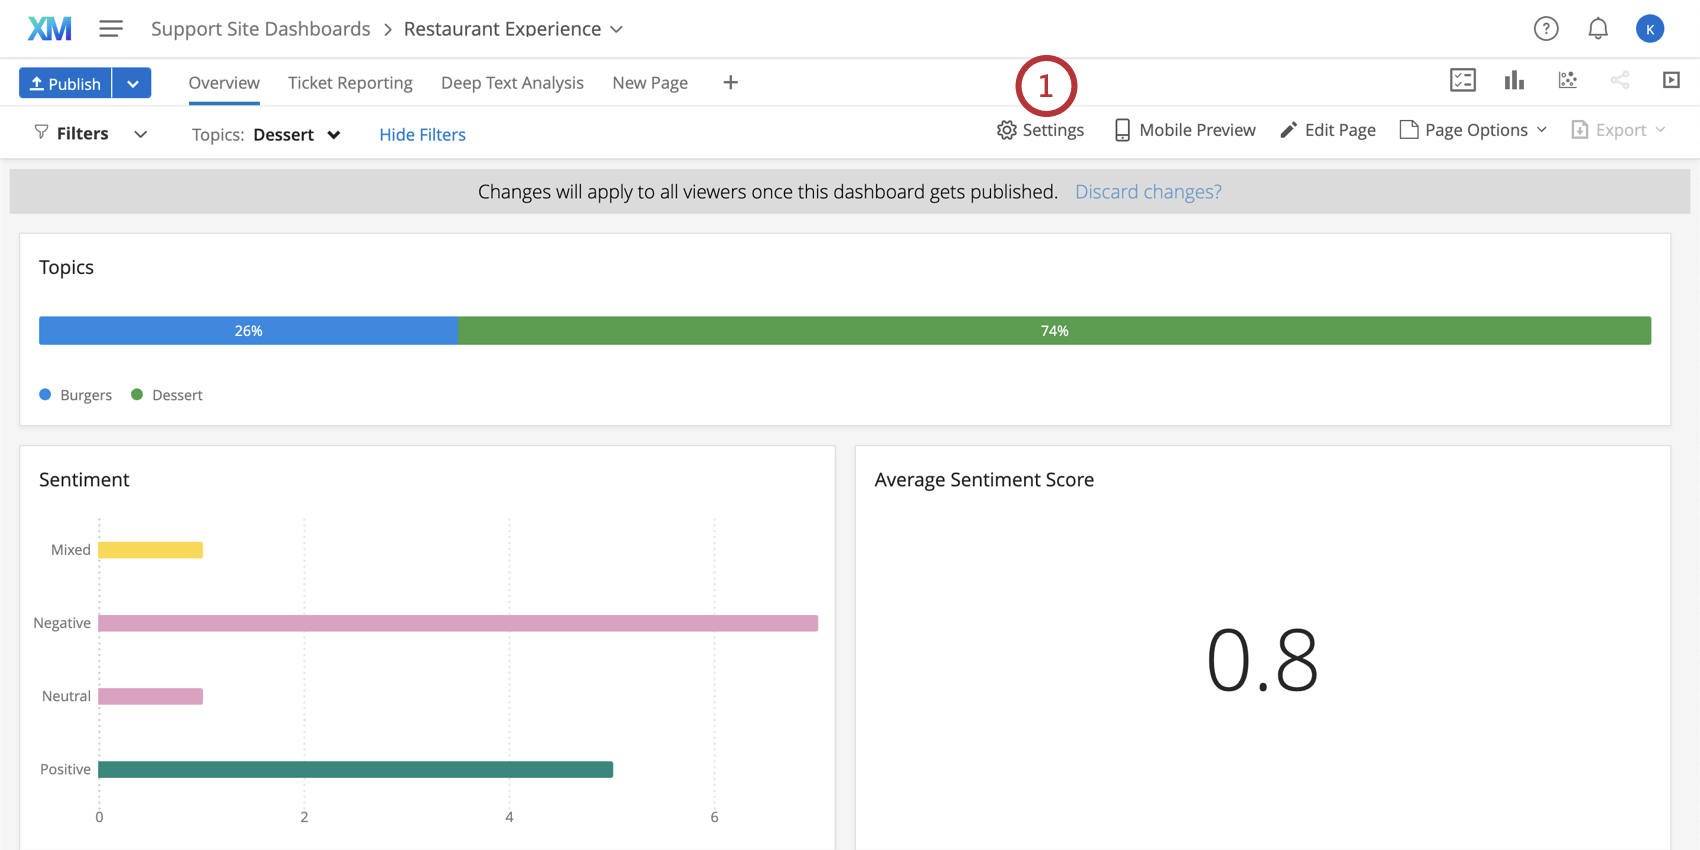 Navigating to a specific dashboard, then clicking Settings